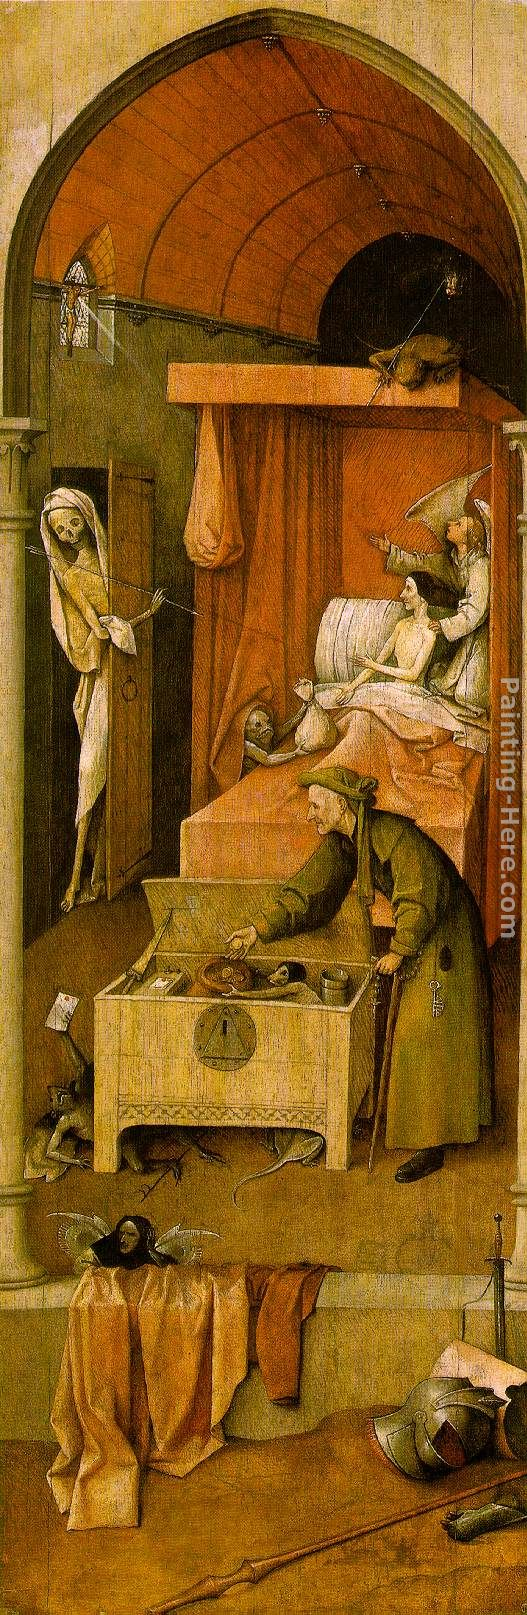 Death and the Miser painting - Hieronymus Bosch Death and the Miser art painting